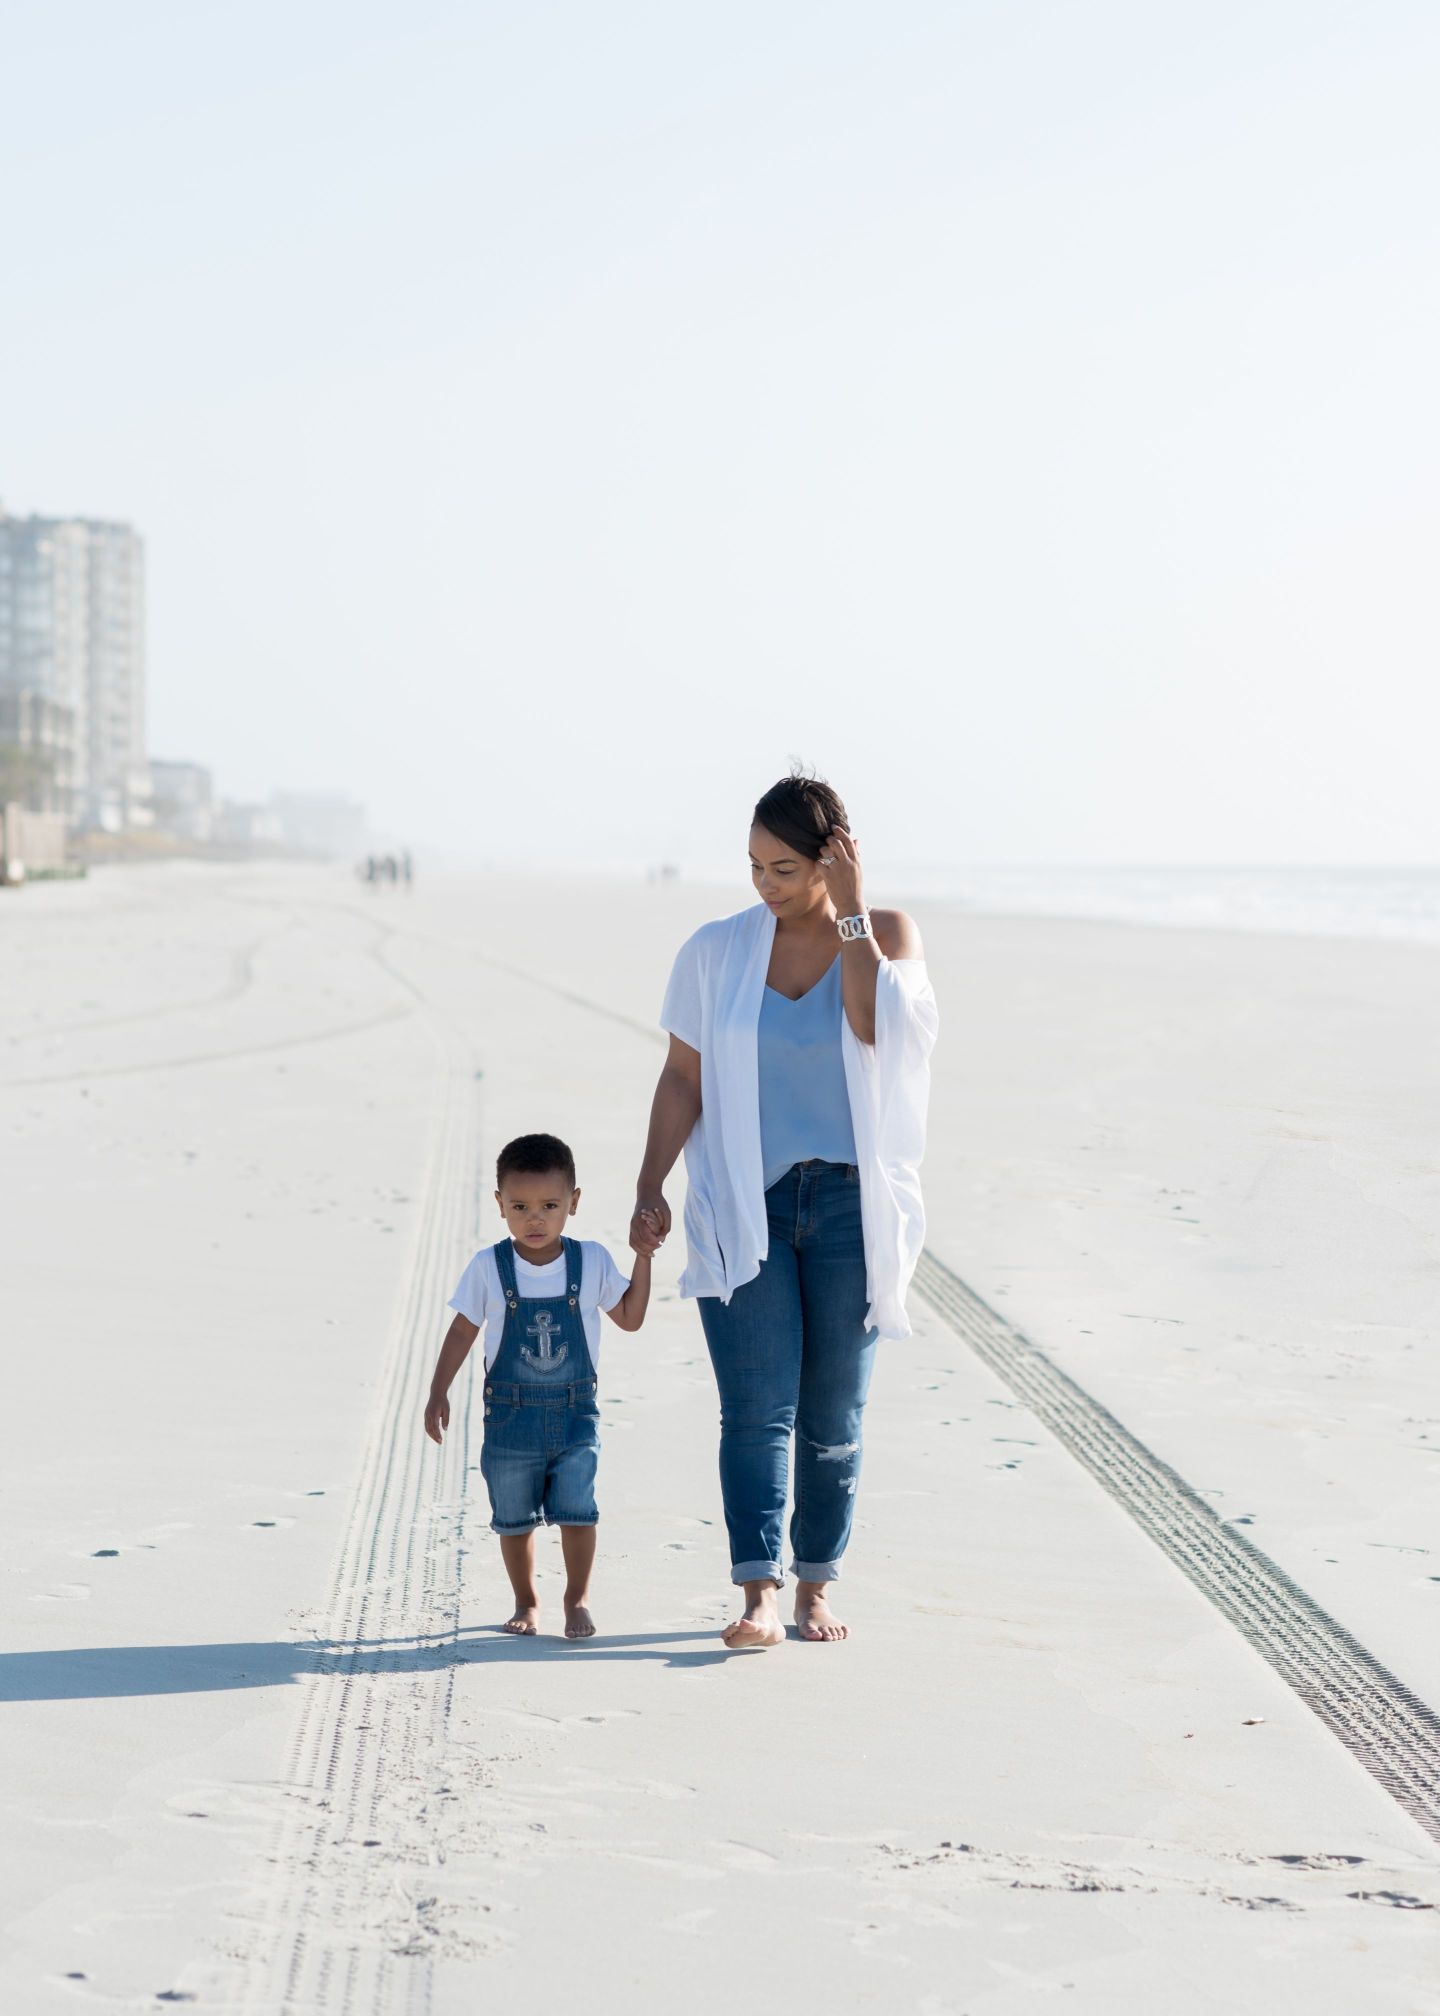 DSC_7892-1440x2016 Beach Family Photos: How To Make the Most of Your Beach Photo Shoot